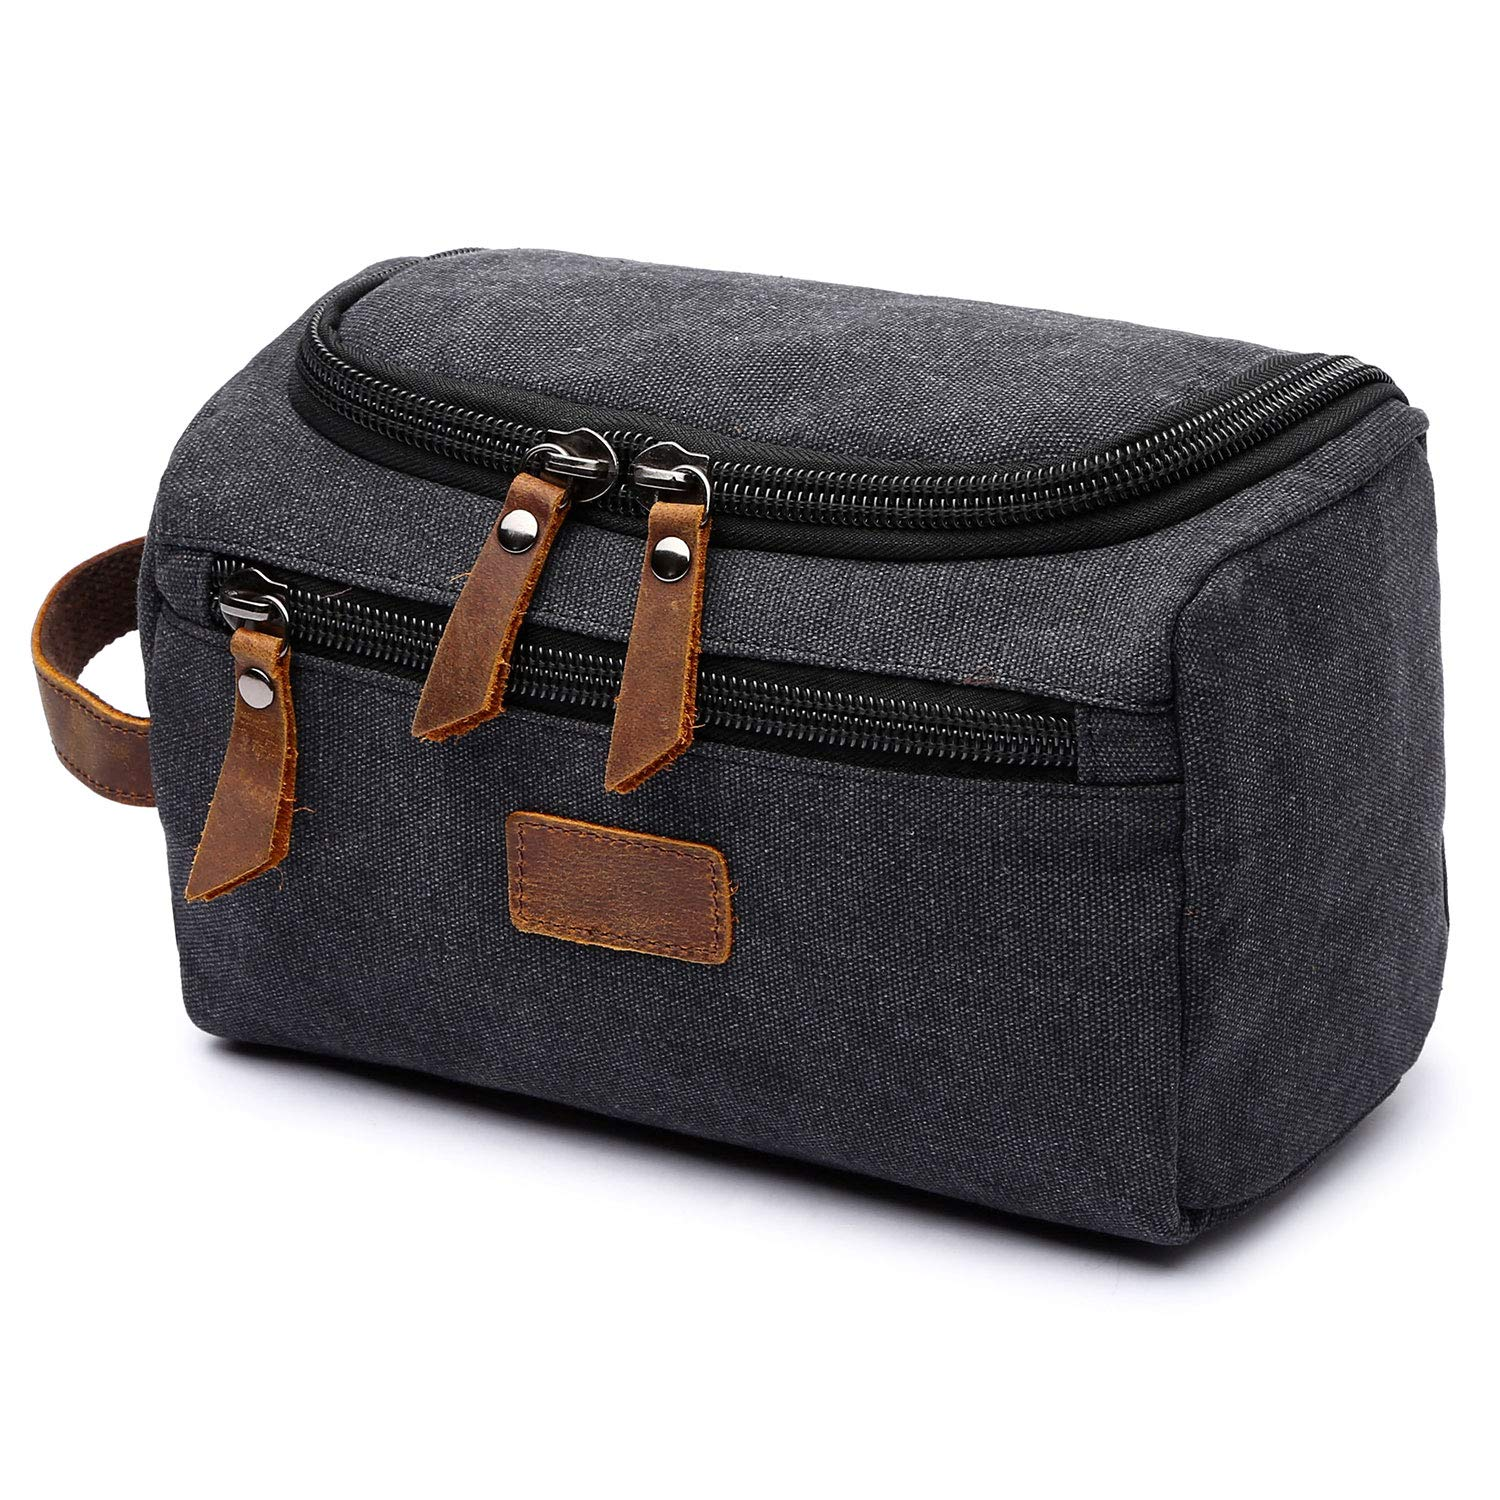 Mens Toiletry Bag, Yousu Small Canvas Multipurpose Organizer Bags Travel Accessories carry on Bag Shaving Dopp Case Black